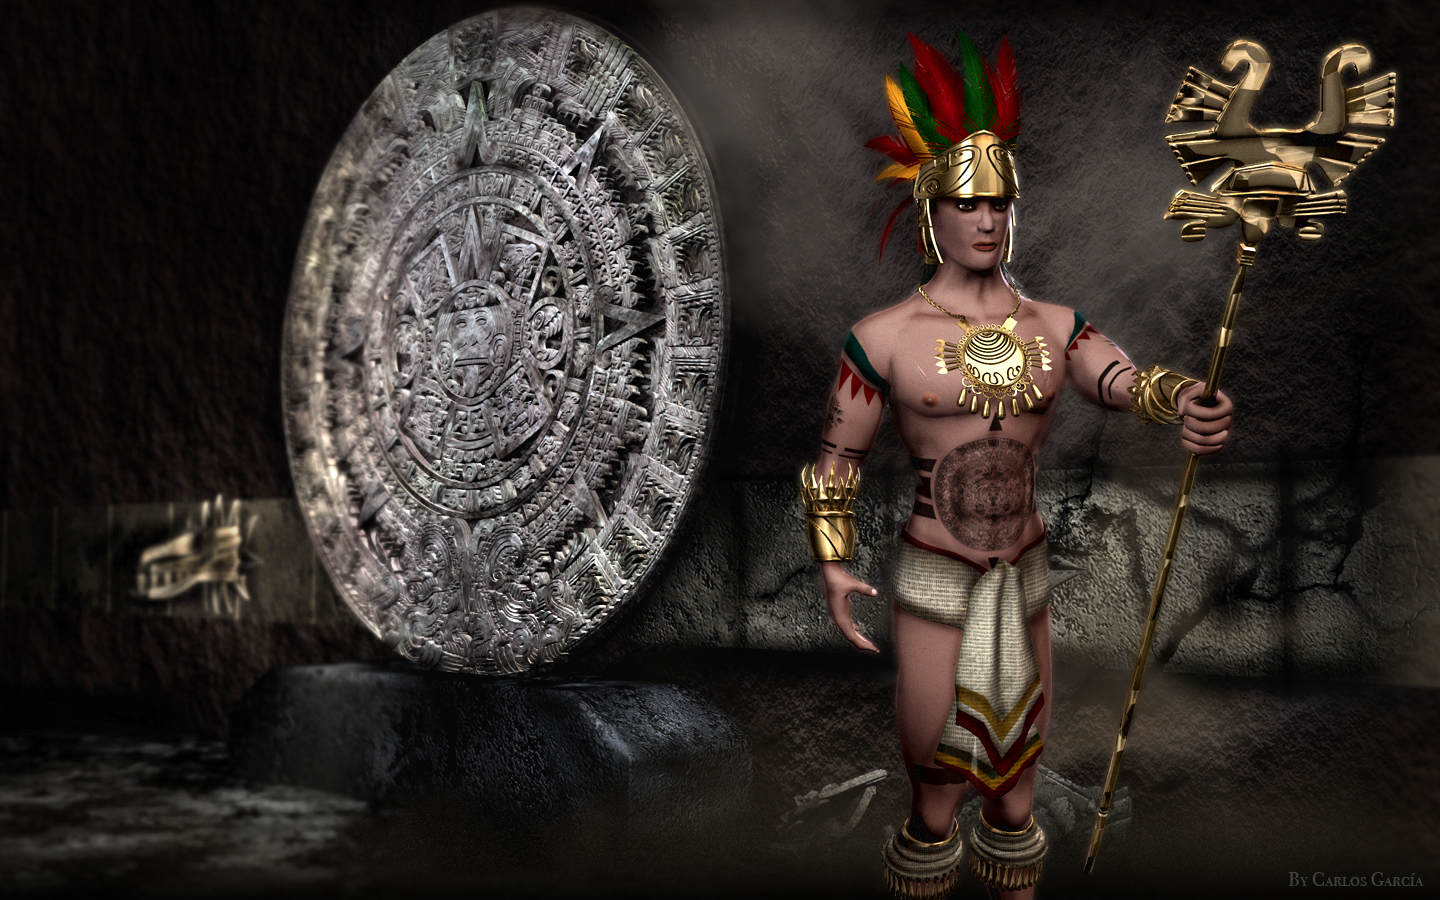 aztec advances Mesoamerica civilizations (olmec, maya, aztec, and inca empires) interactive social studies notebook this product contains interactive cut and paste learning material for students to create an organized social studies interactive notebook.